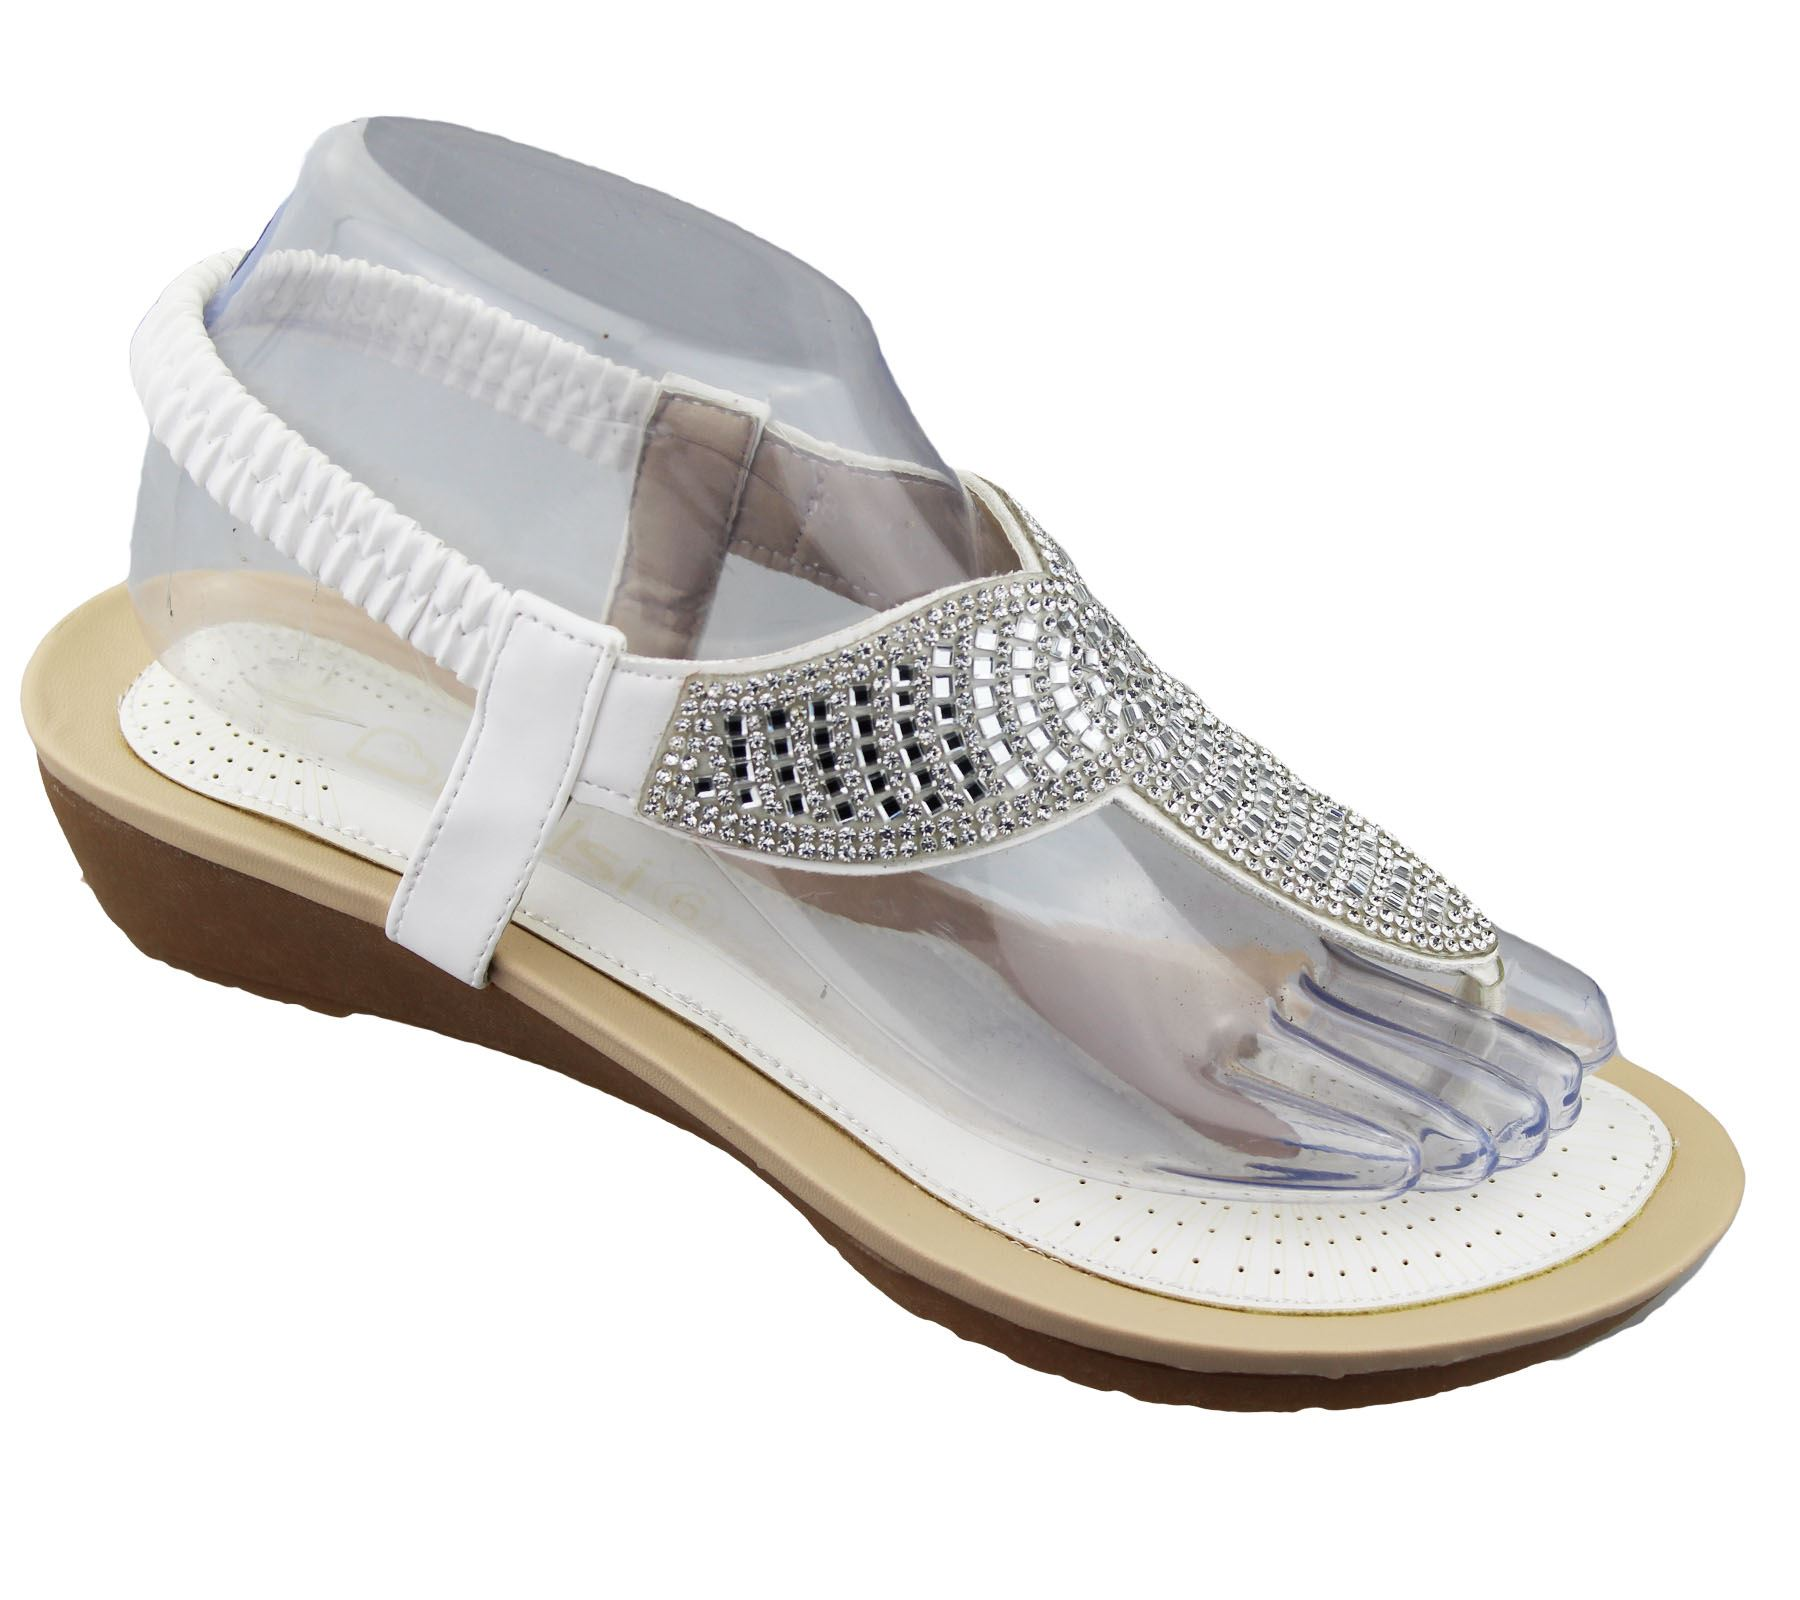 Free shipping BOTH ways on womens soft shoes, from our vast selection of styles. Fast delivery, and 24/7/ real-person service with a smile. Click or call